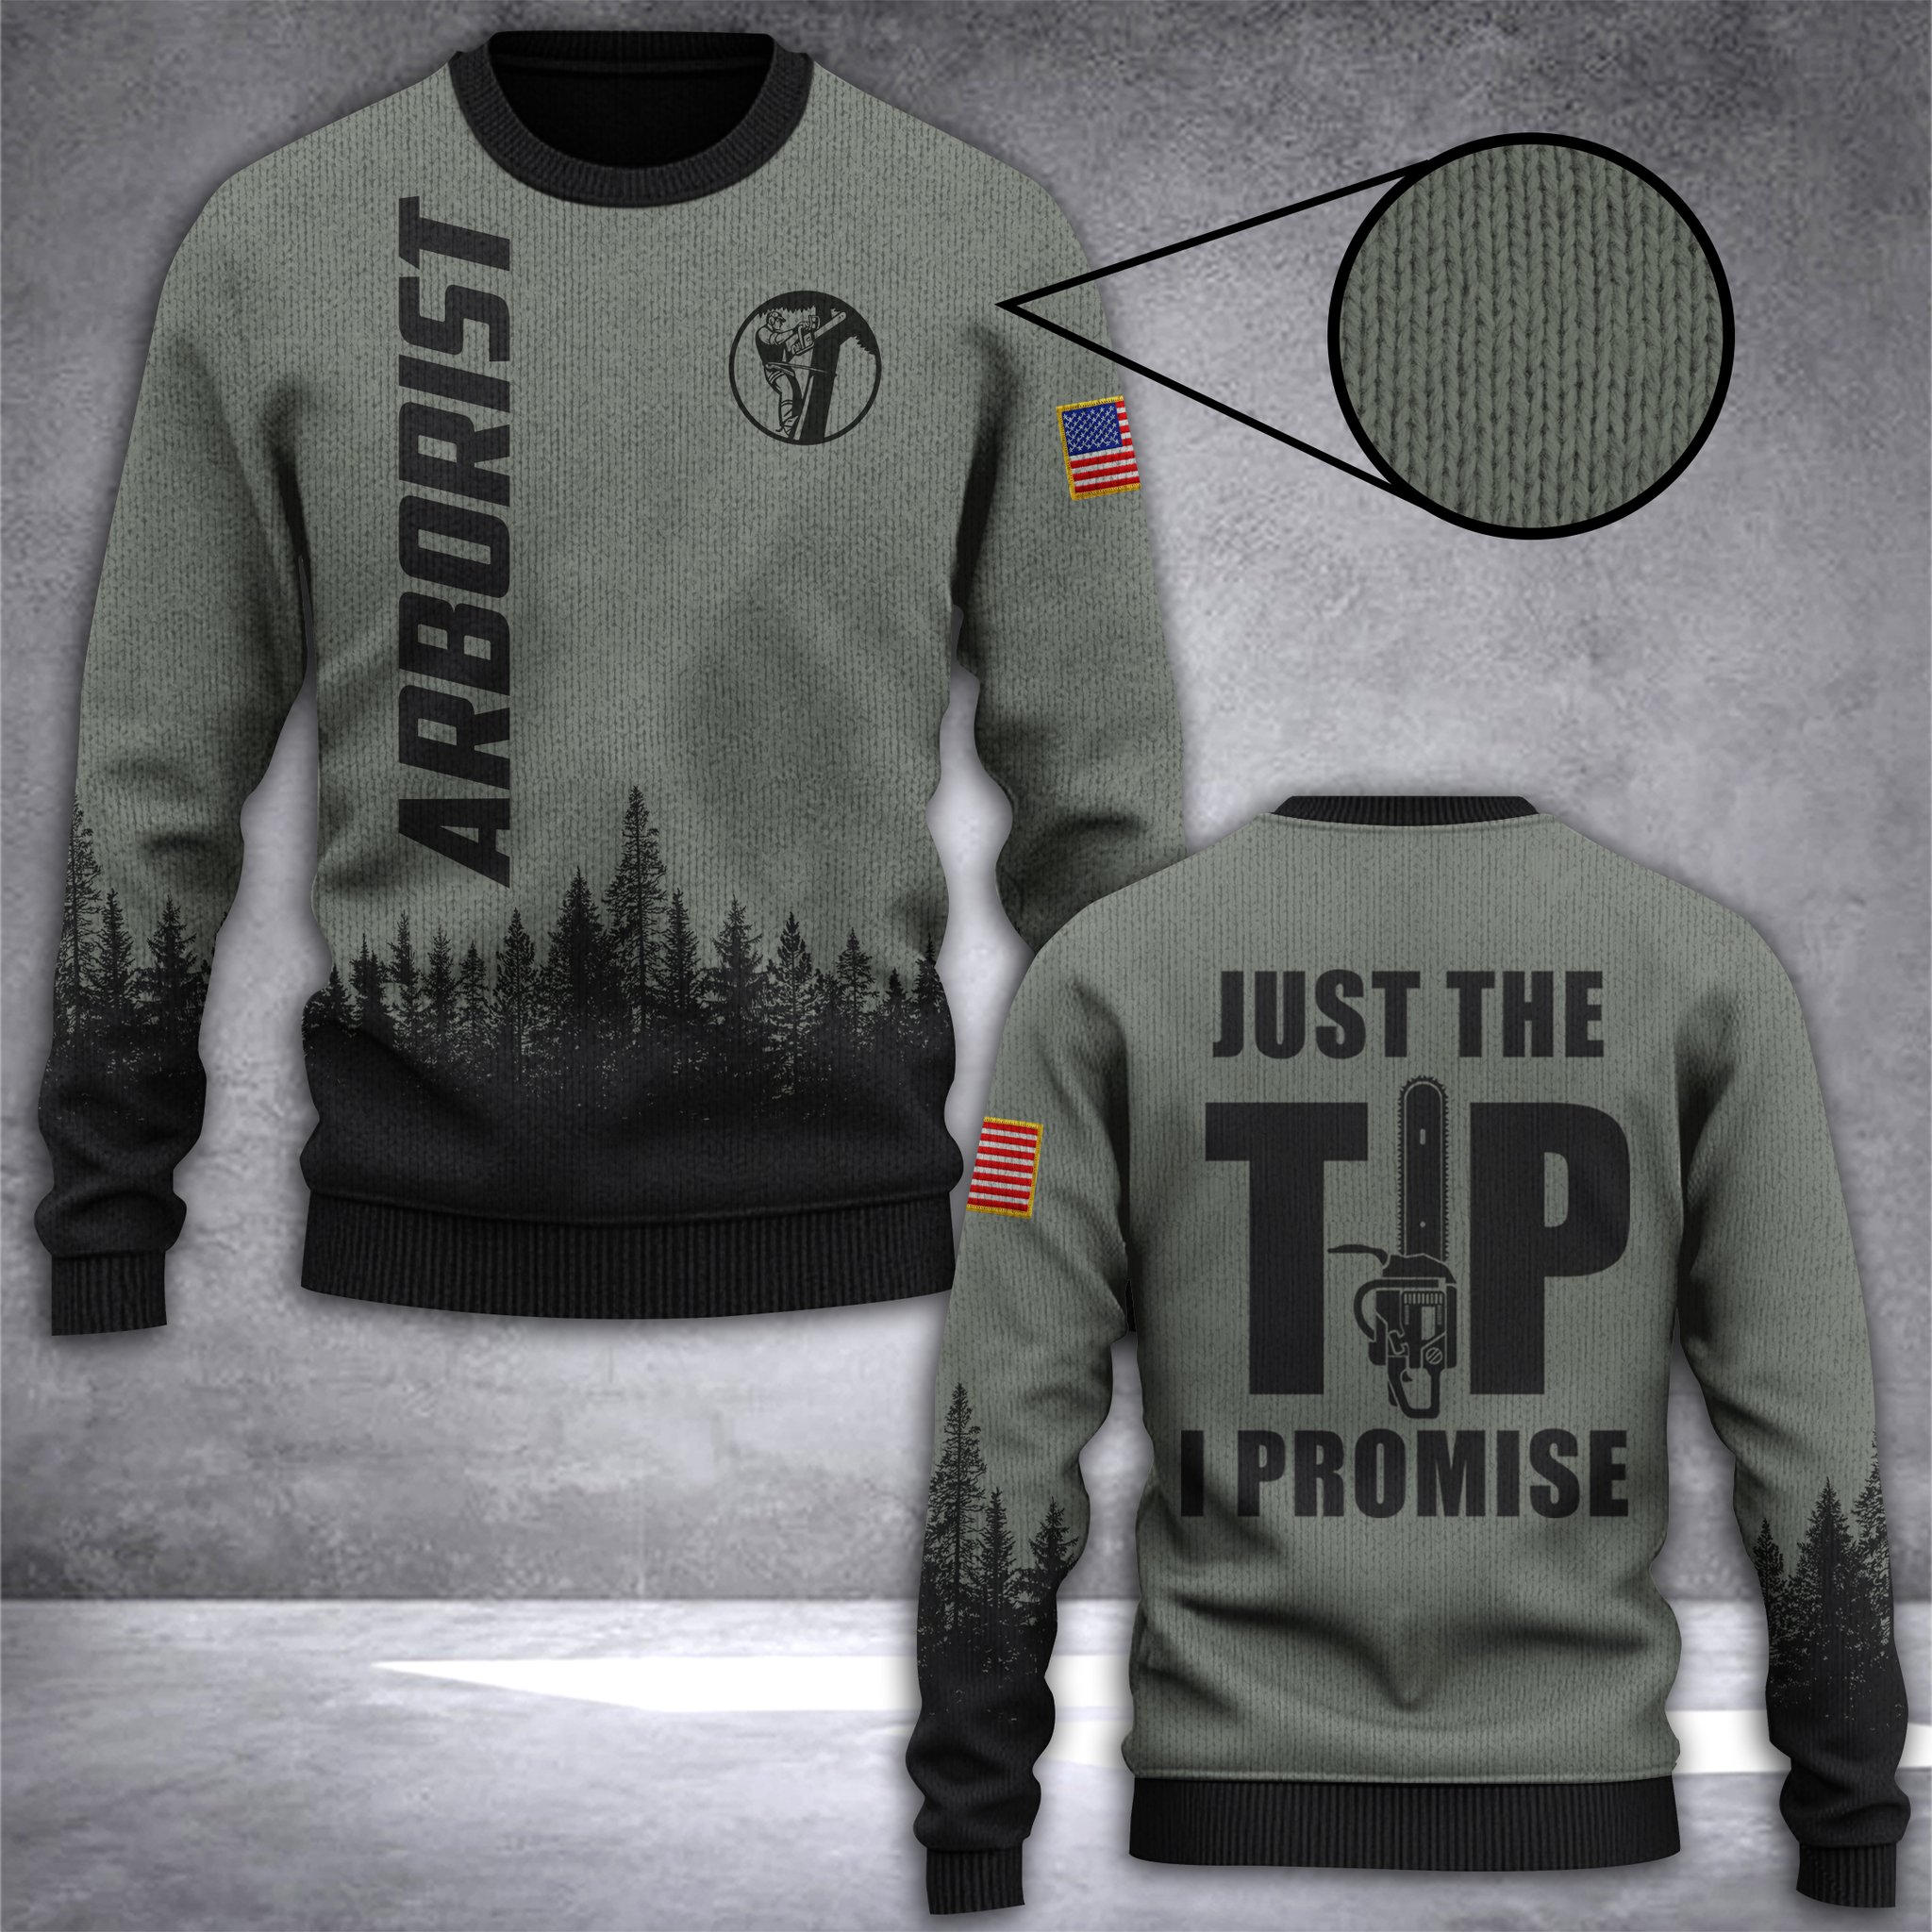 arborist just the tip i promise all over print ugly christmas sweater 2